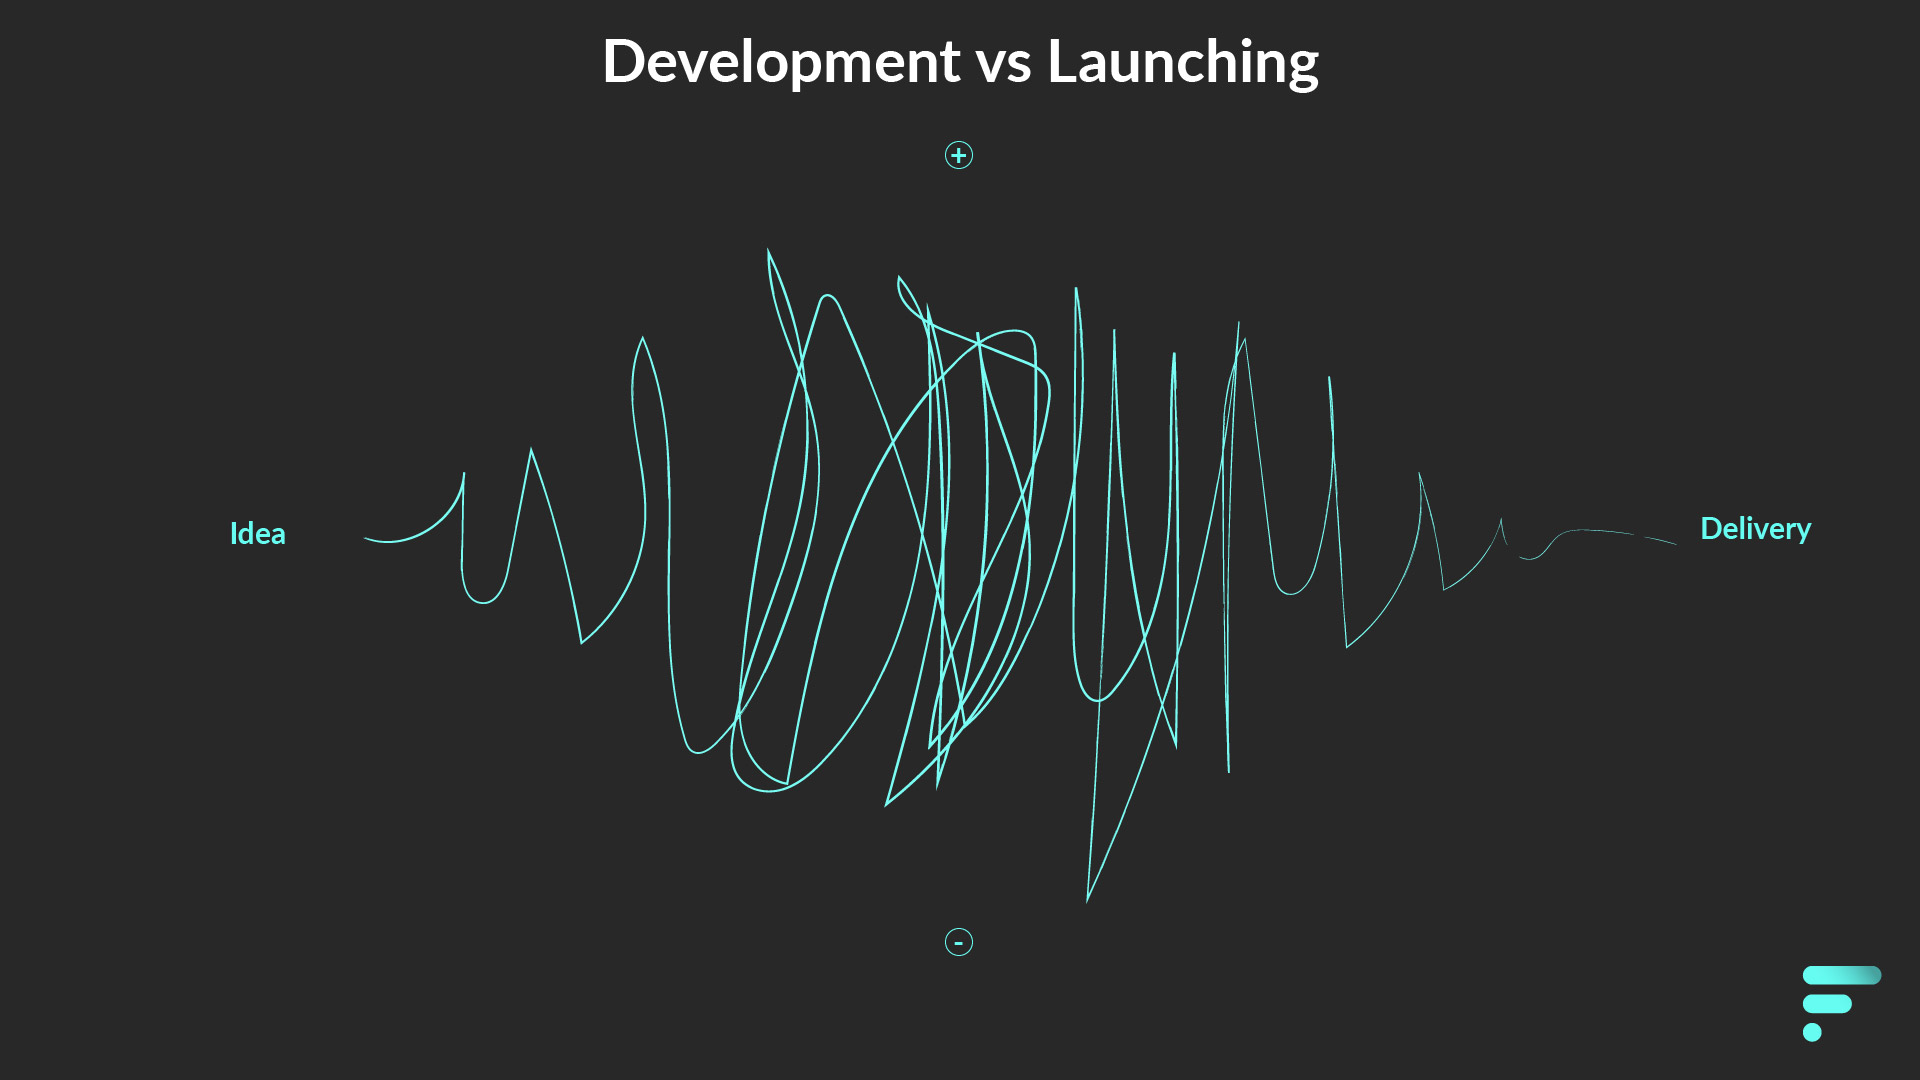 Development and Launching